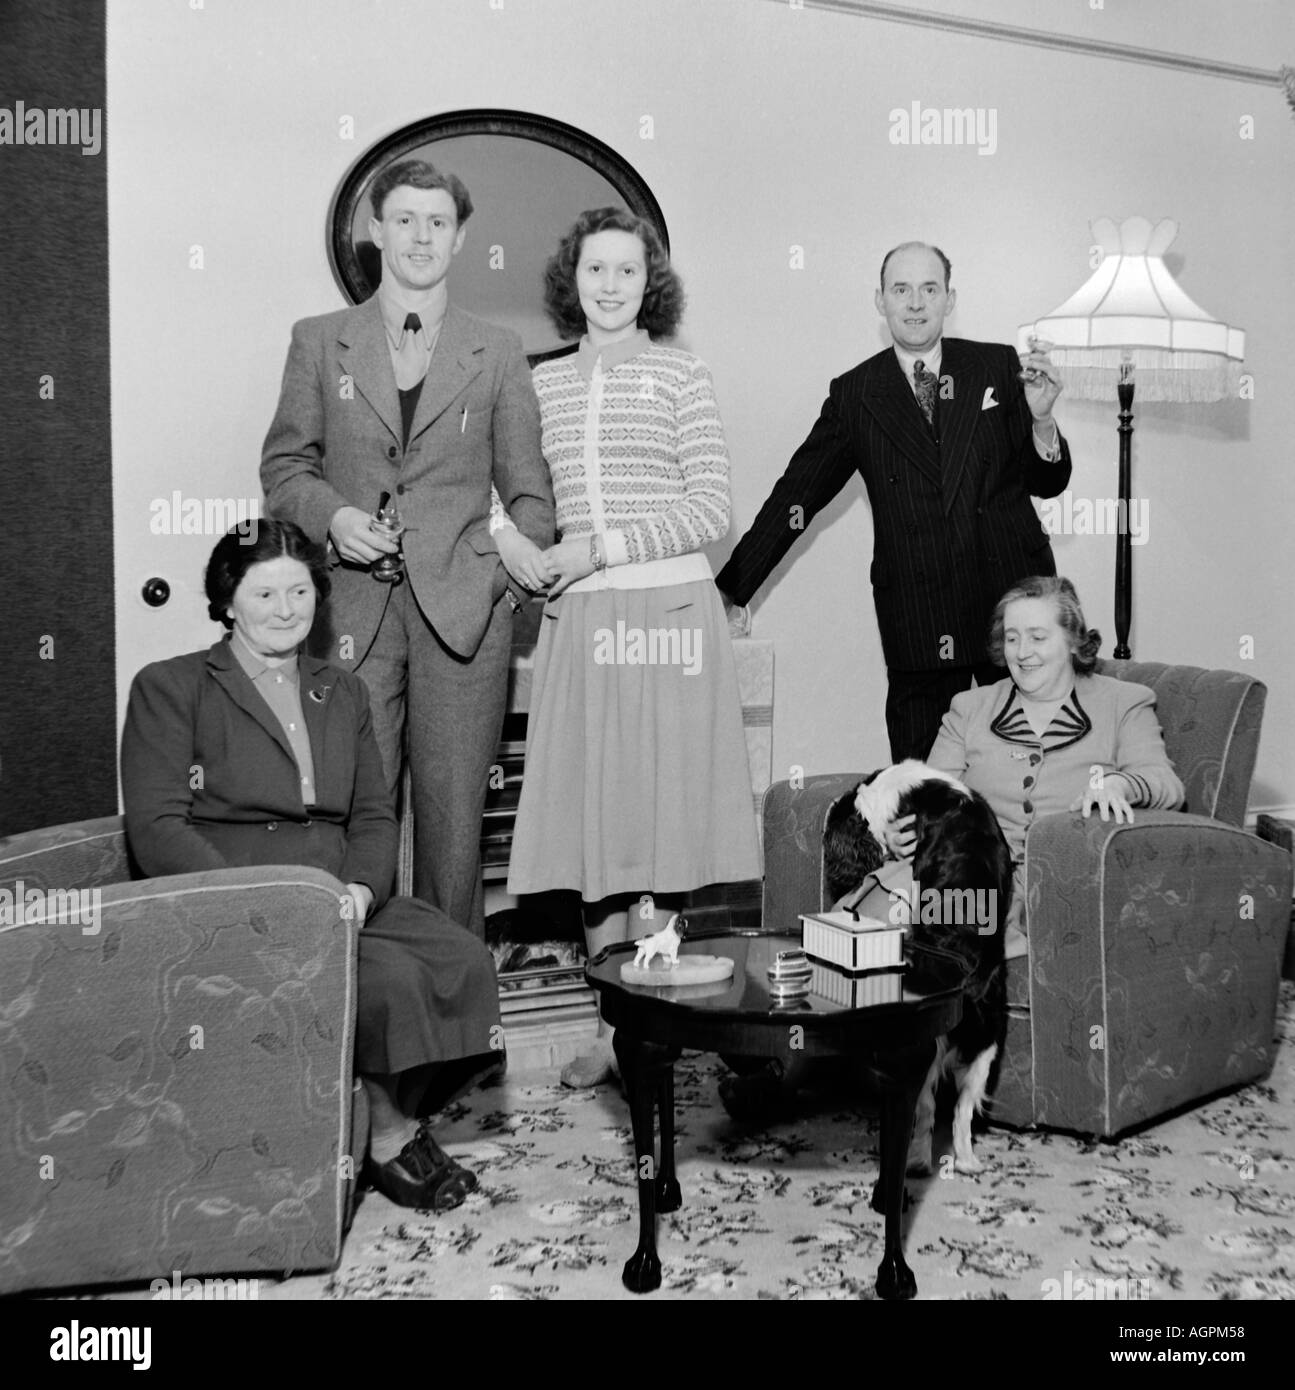 Old vintage black and white family snapshot photograph of group in living room circa 1950